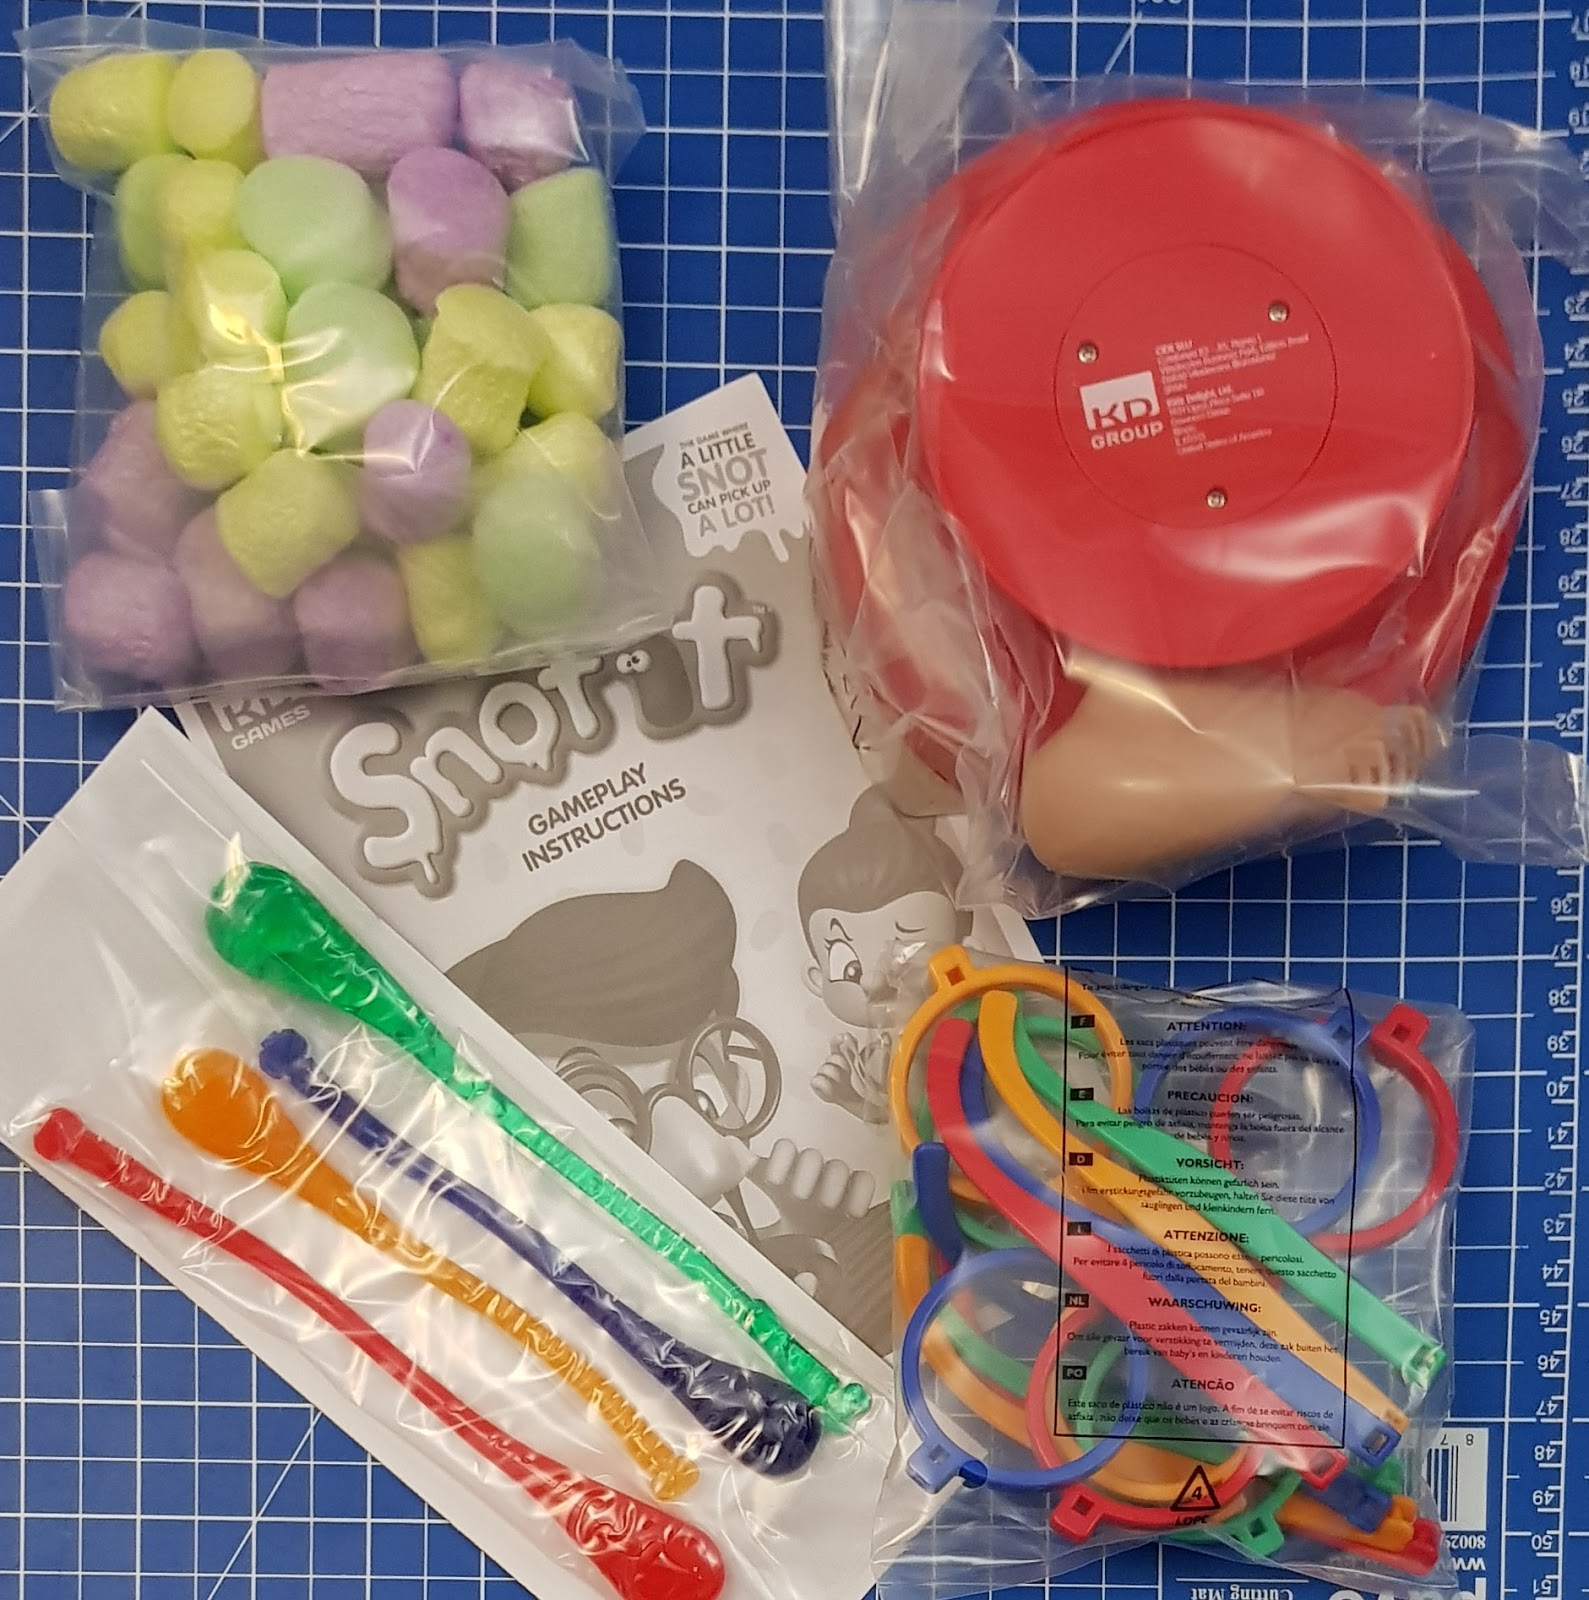 466e9bbe155 Initial set up takes only 5 minutes to construct the glasses and insert the  snots. The snots are made from that gooey-feeling